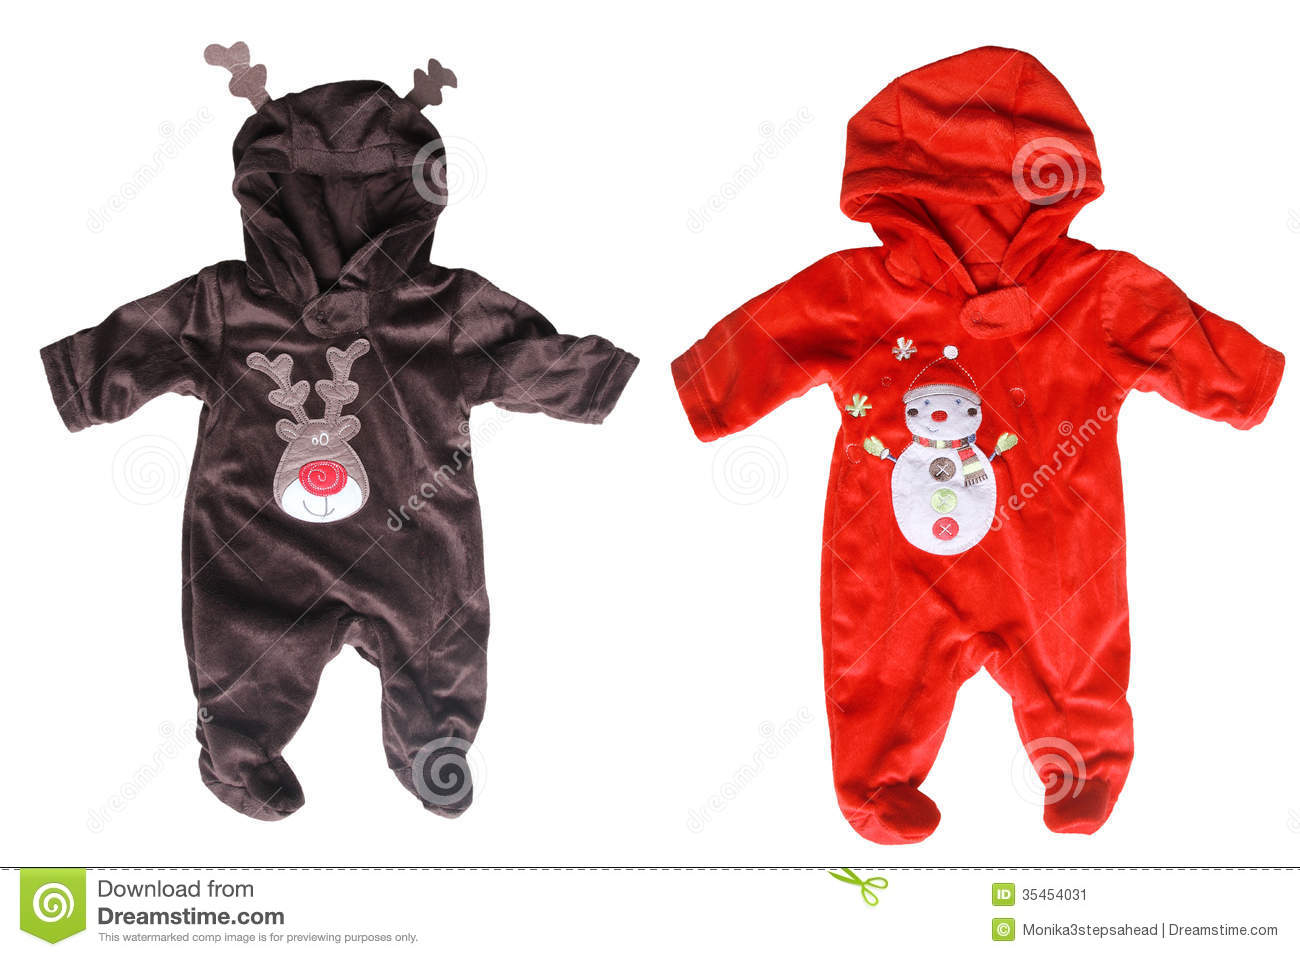 af2562a04 Winter Babies Overalls For Christmas Stock Image - Image of baby ...